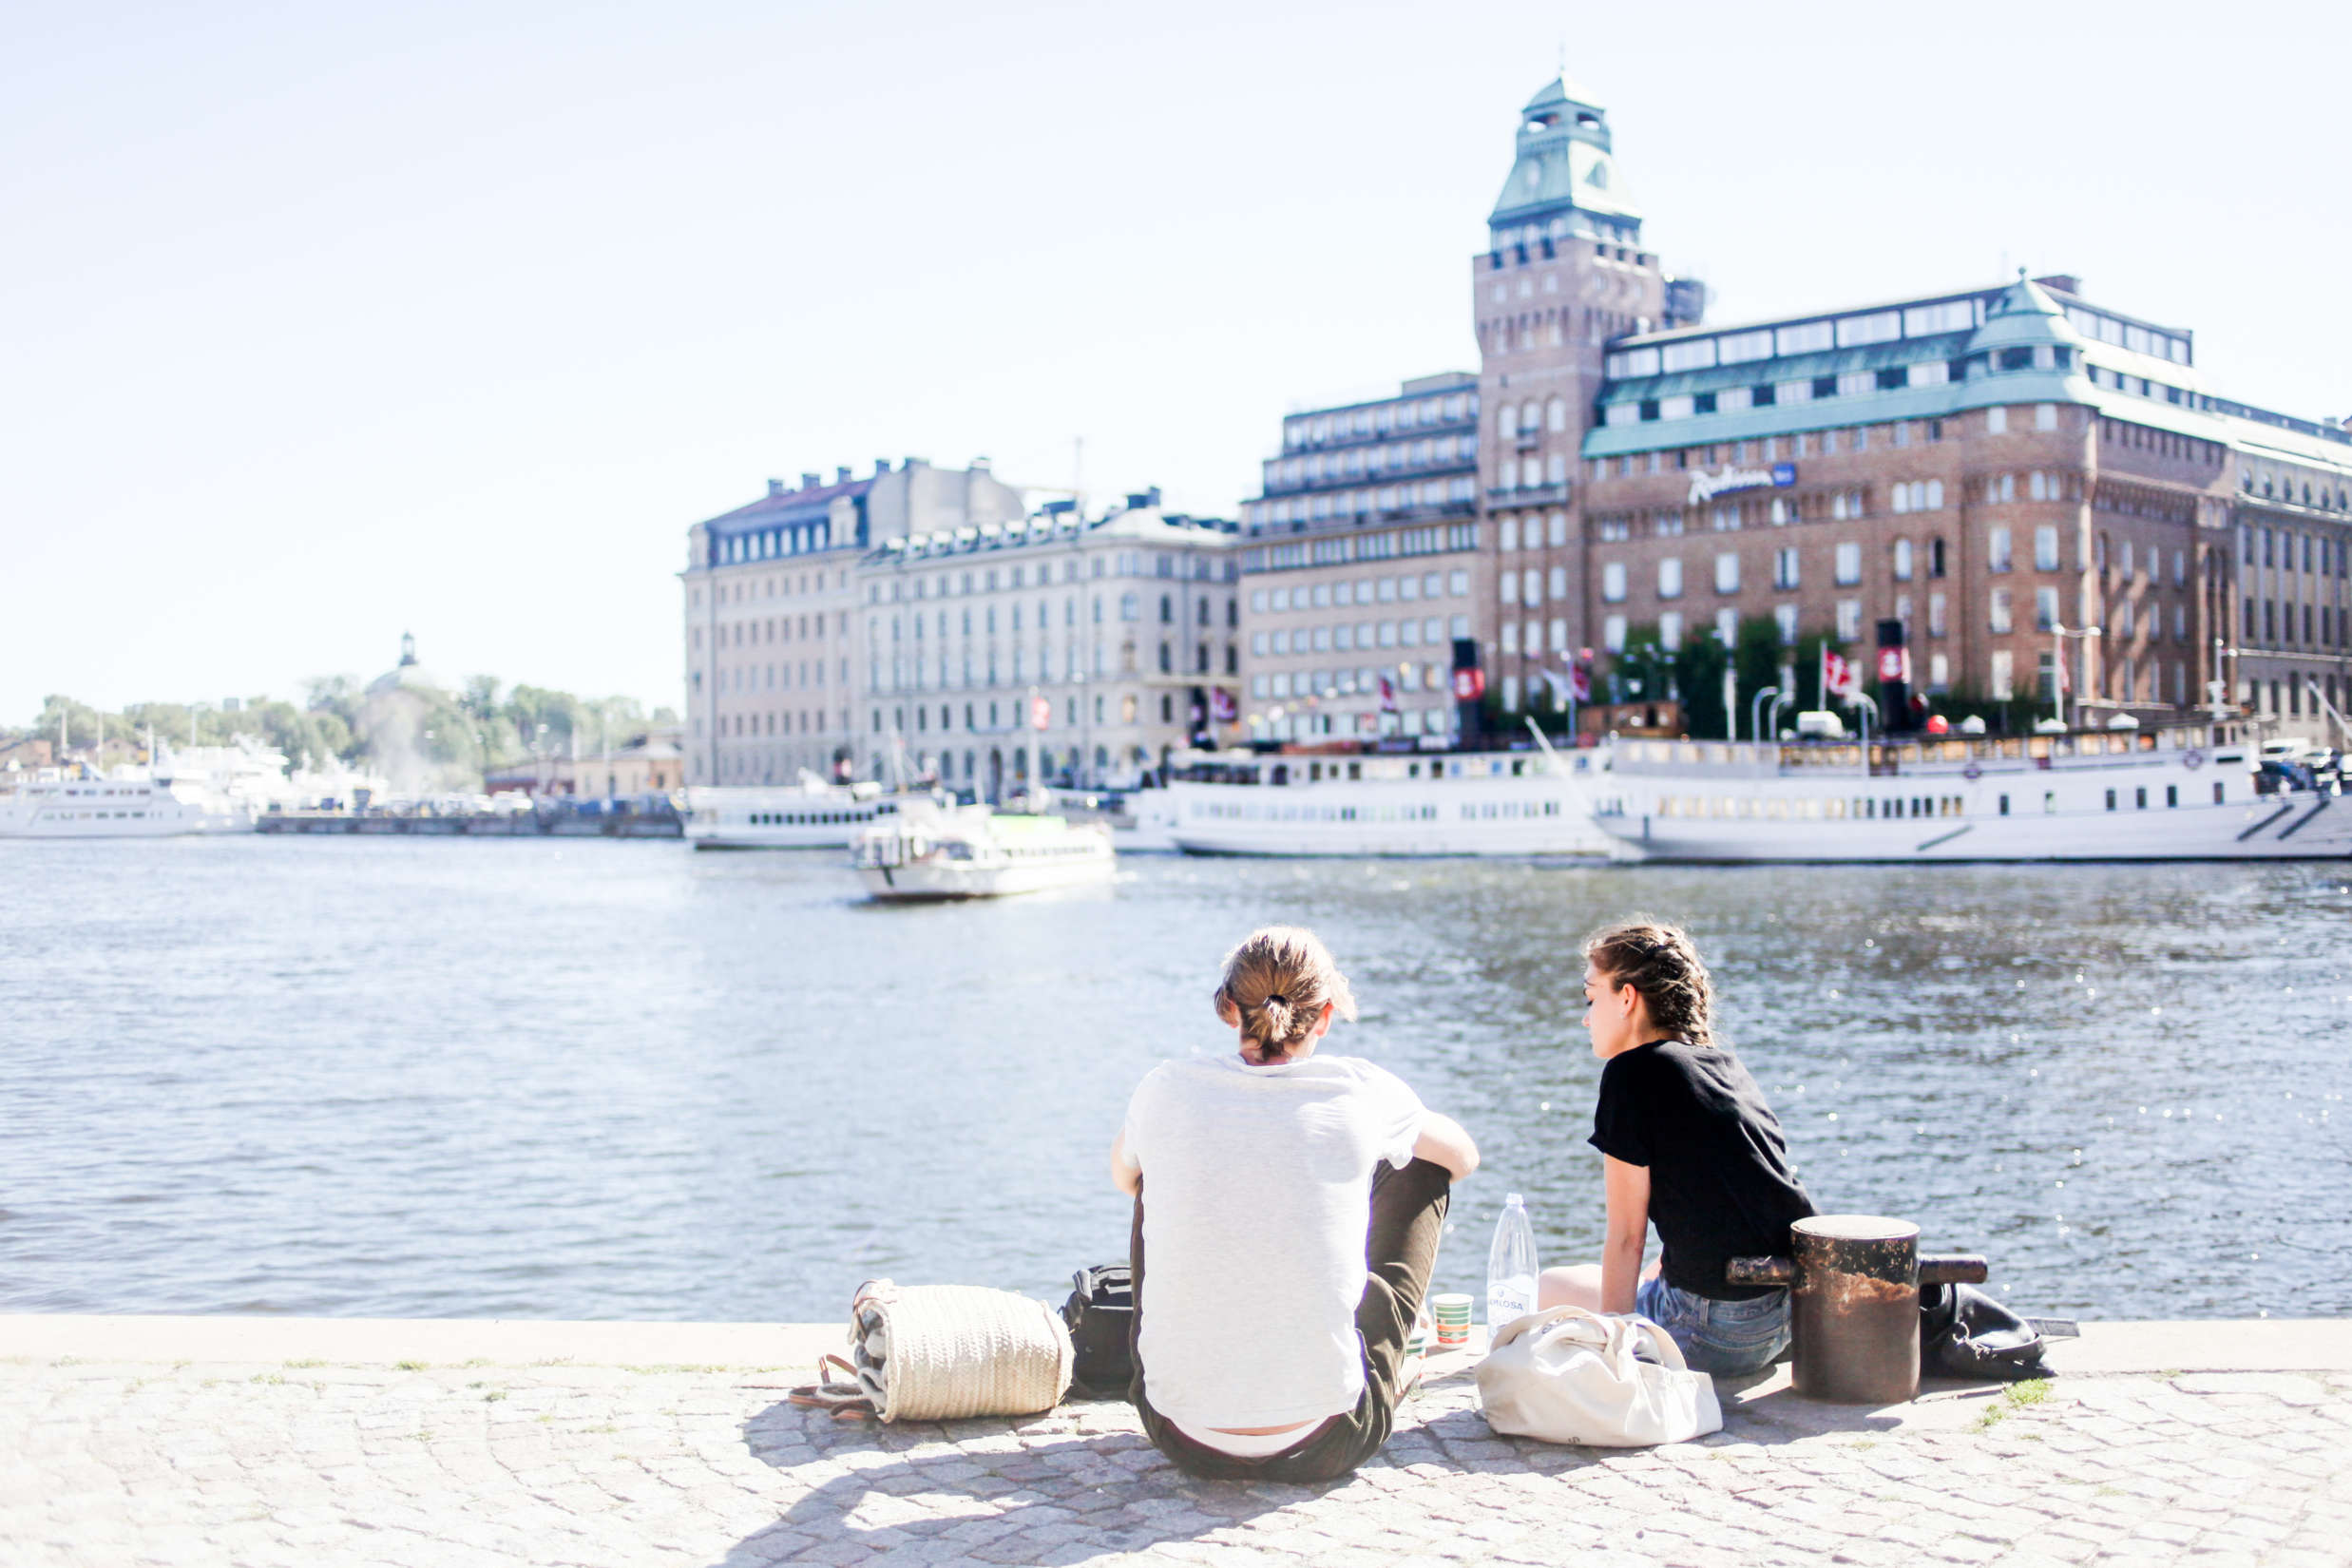 stermalm:SWEDISH IMMIGRATION 101: WHY VACATION IS IMPORTANT